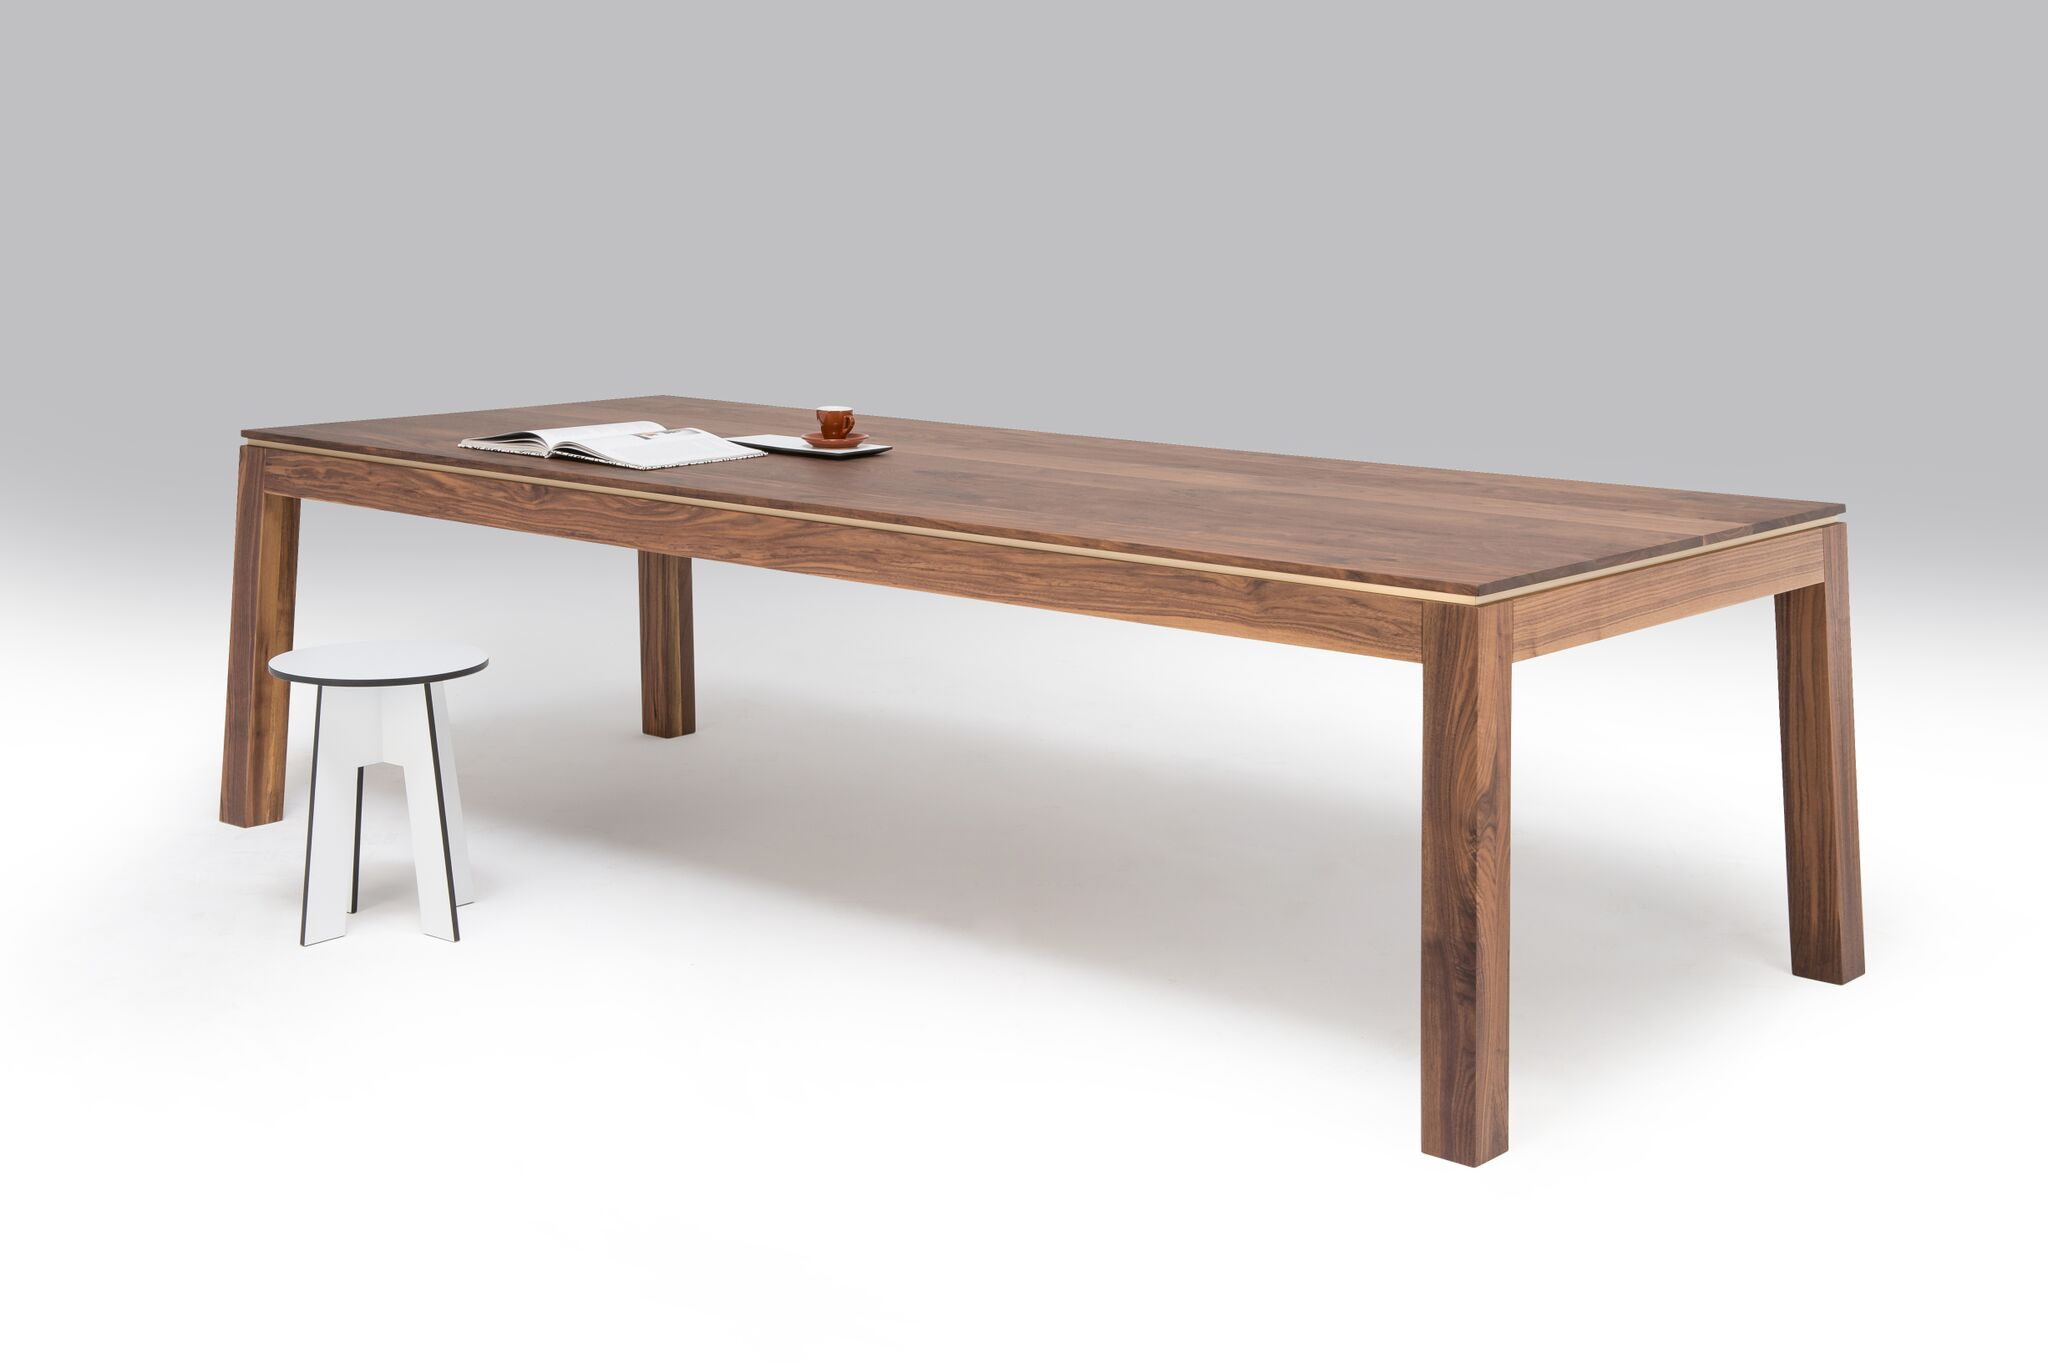 Gallery Of The Mila Table By Fraco Crea Local Australian Furniture Design Melbourne, Vic Image 18